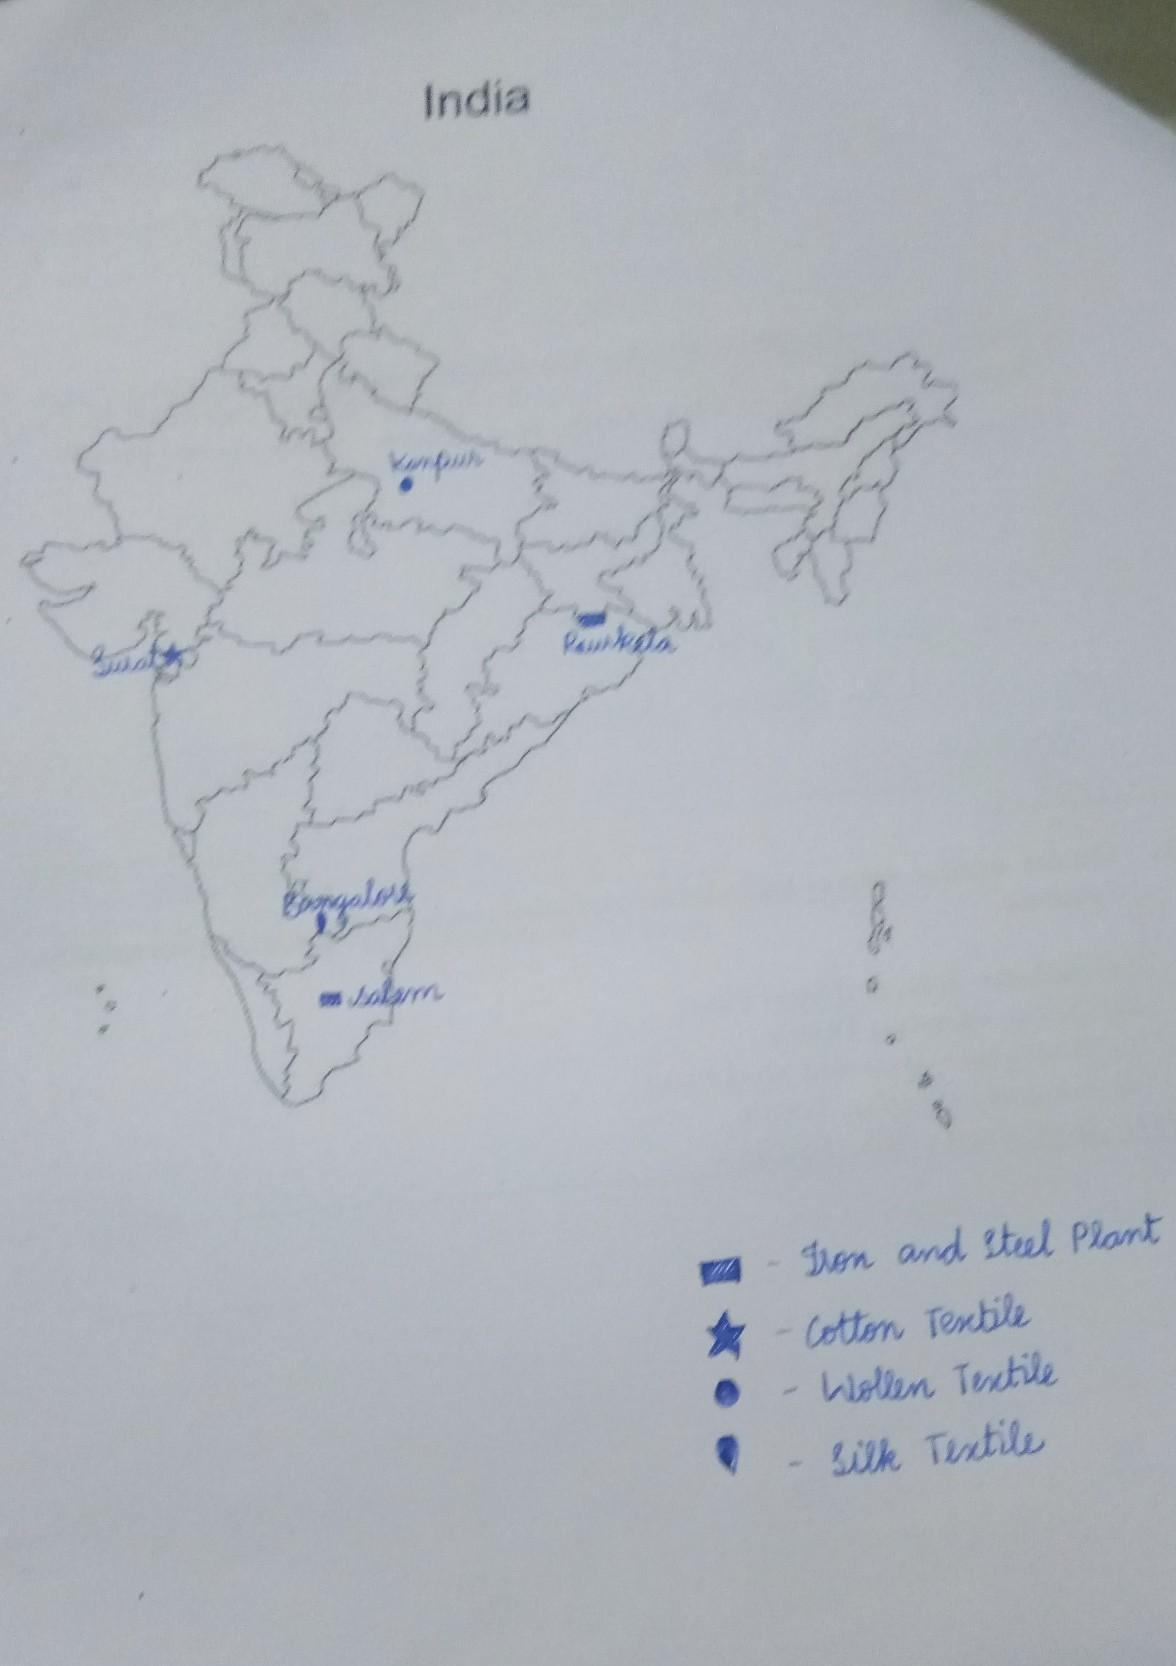 On the outline map of India locate and label the following